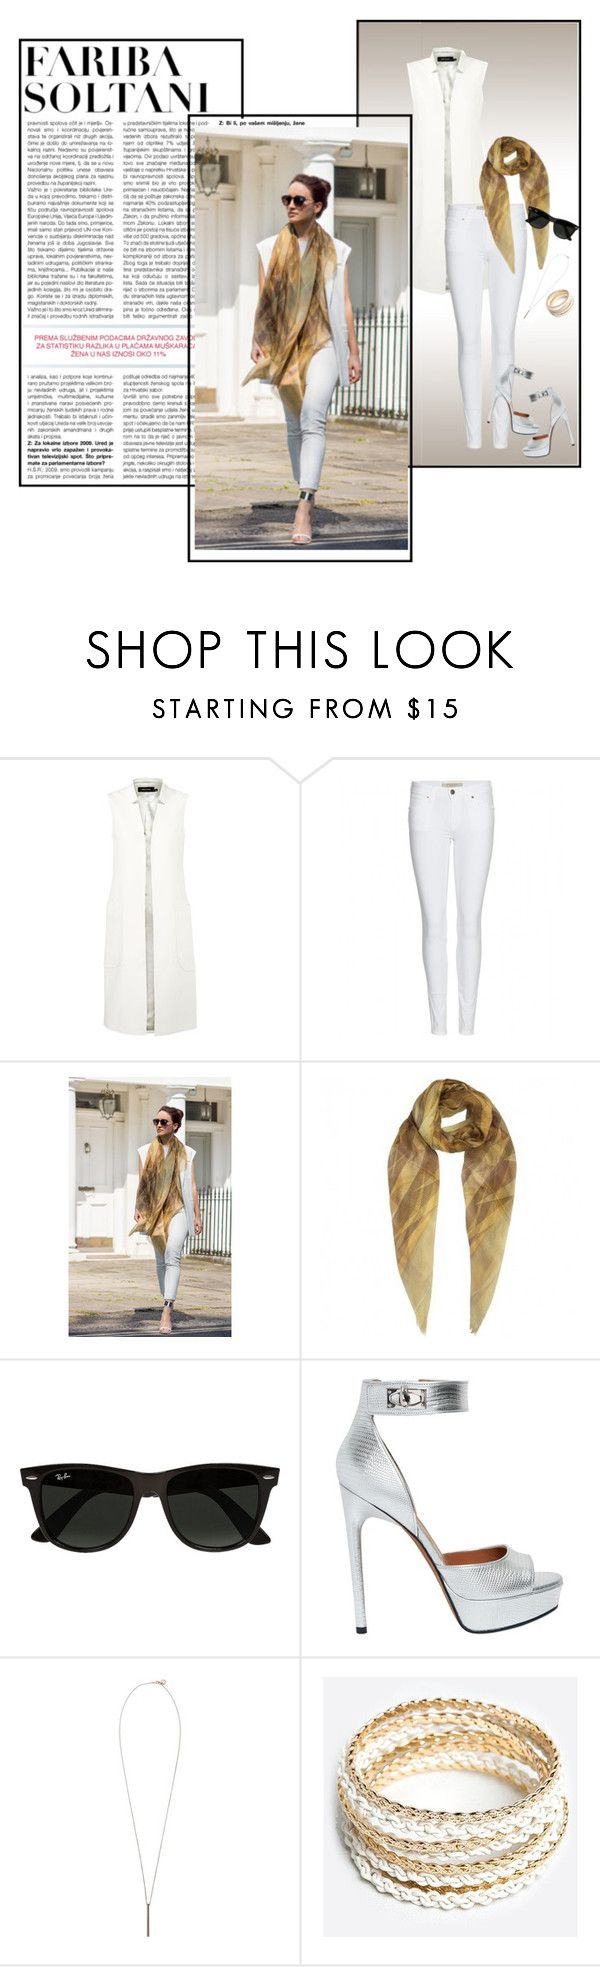 """""""Fariba Soltani"""" by pinky03 on Polyvore featuring Karen Millen, Burberry, Ray-Ban, Givenchy, French Connection, ZooShoo and faribasoltani"""